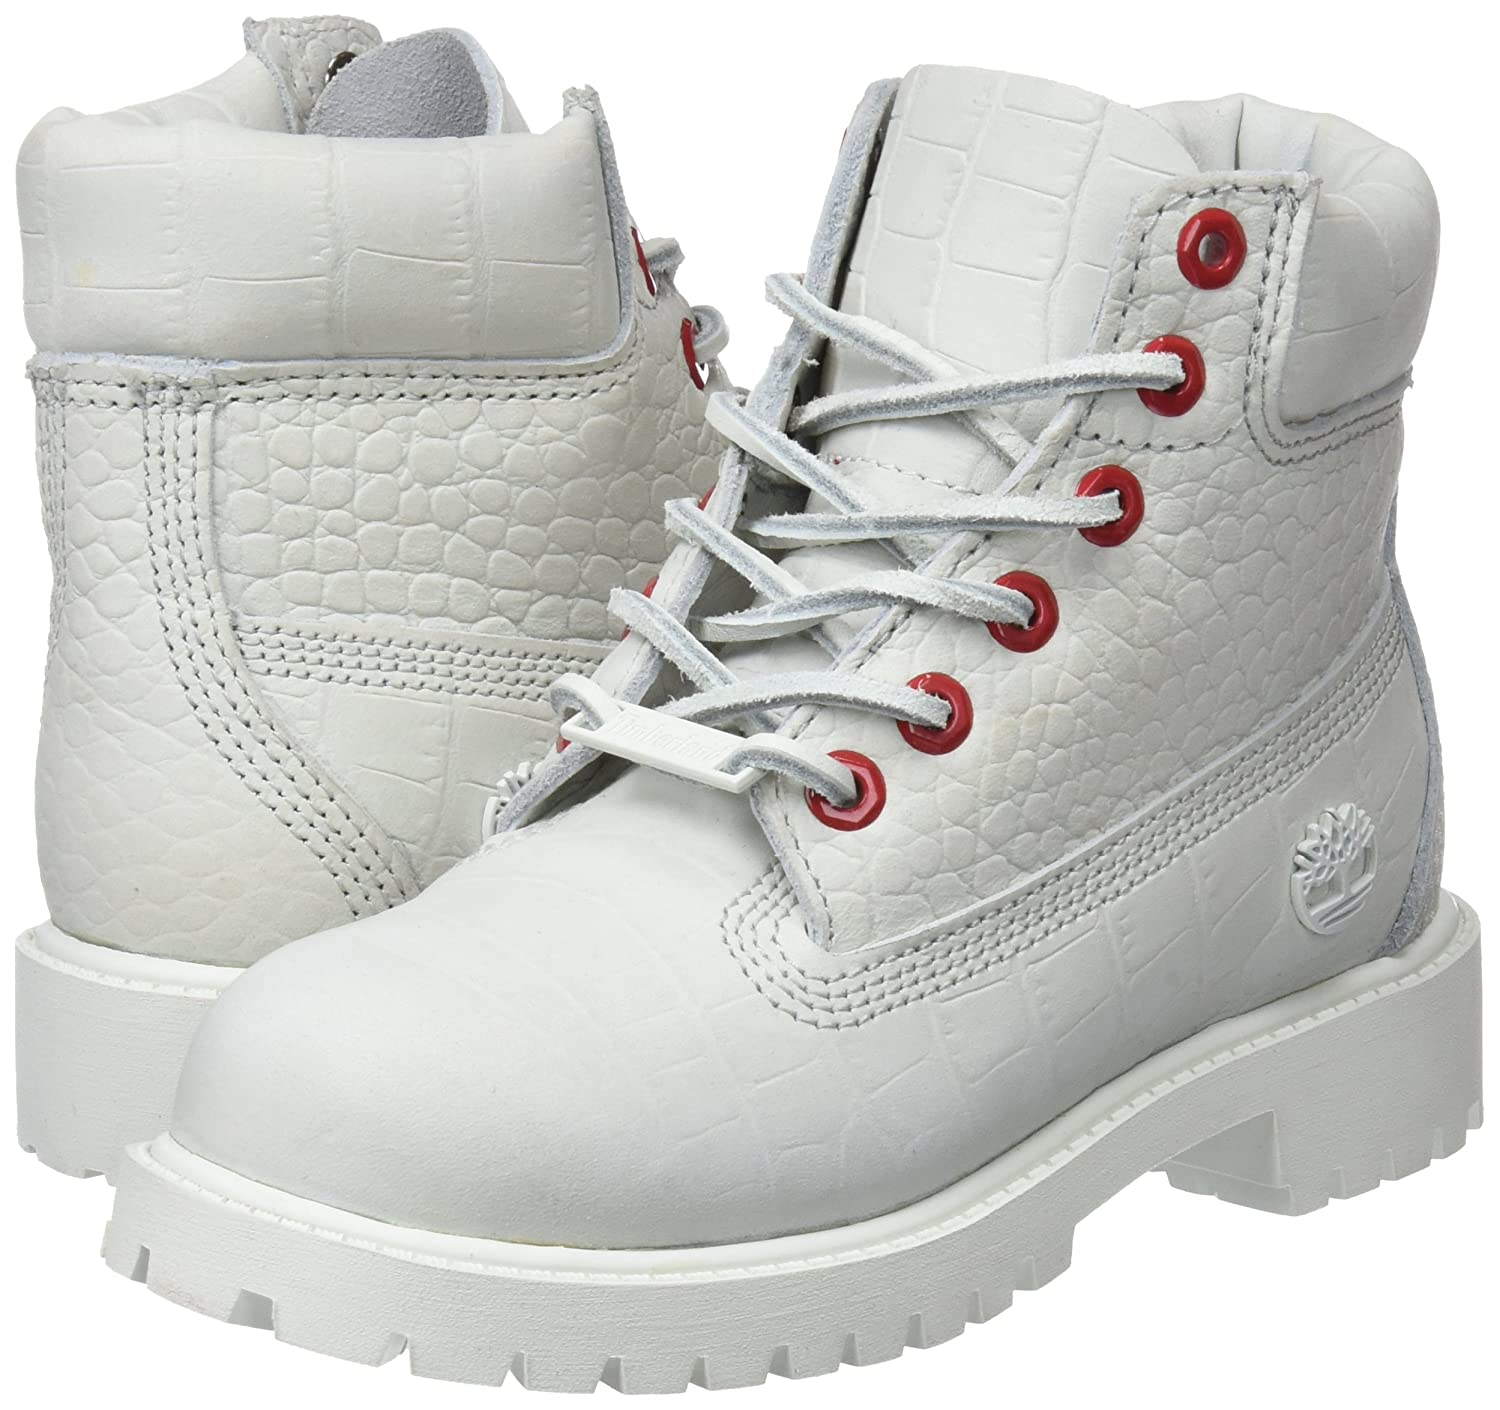 2.5 M US Timberland 6 Inch Youth Little Kids Boots White tb0a1pit